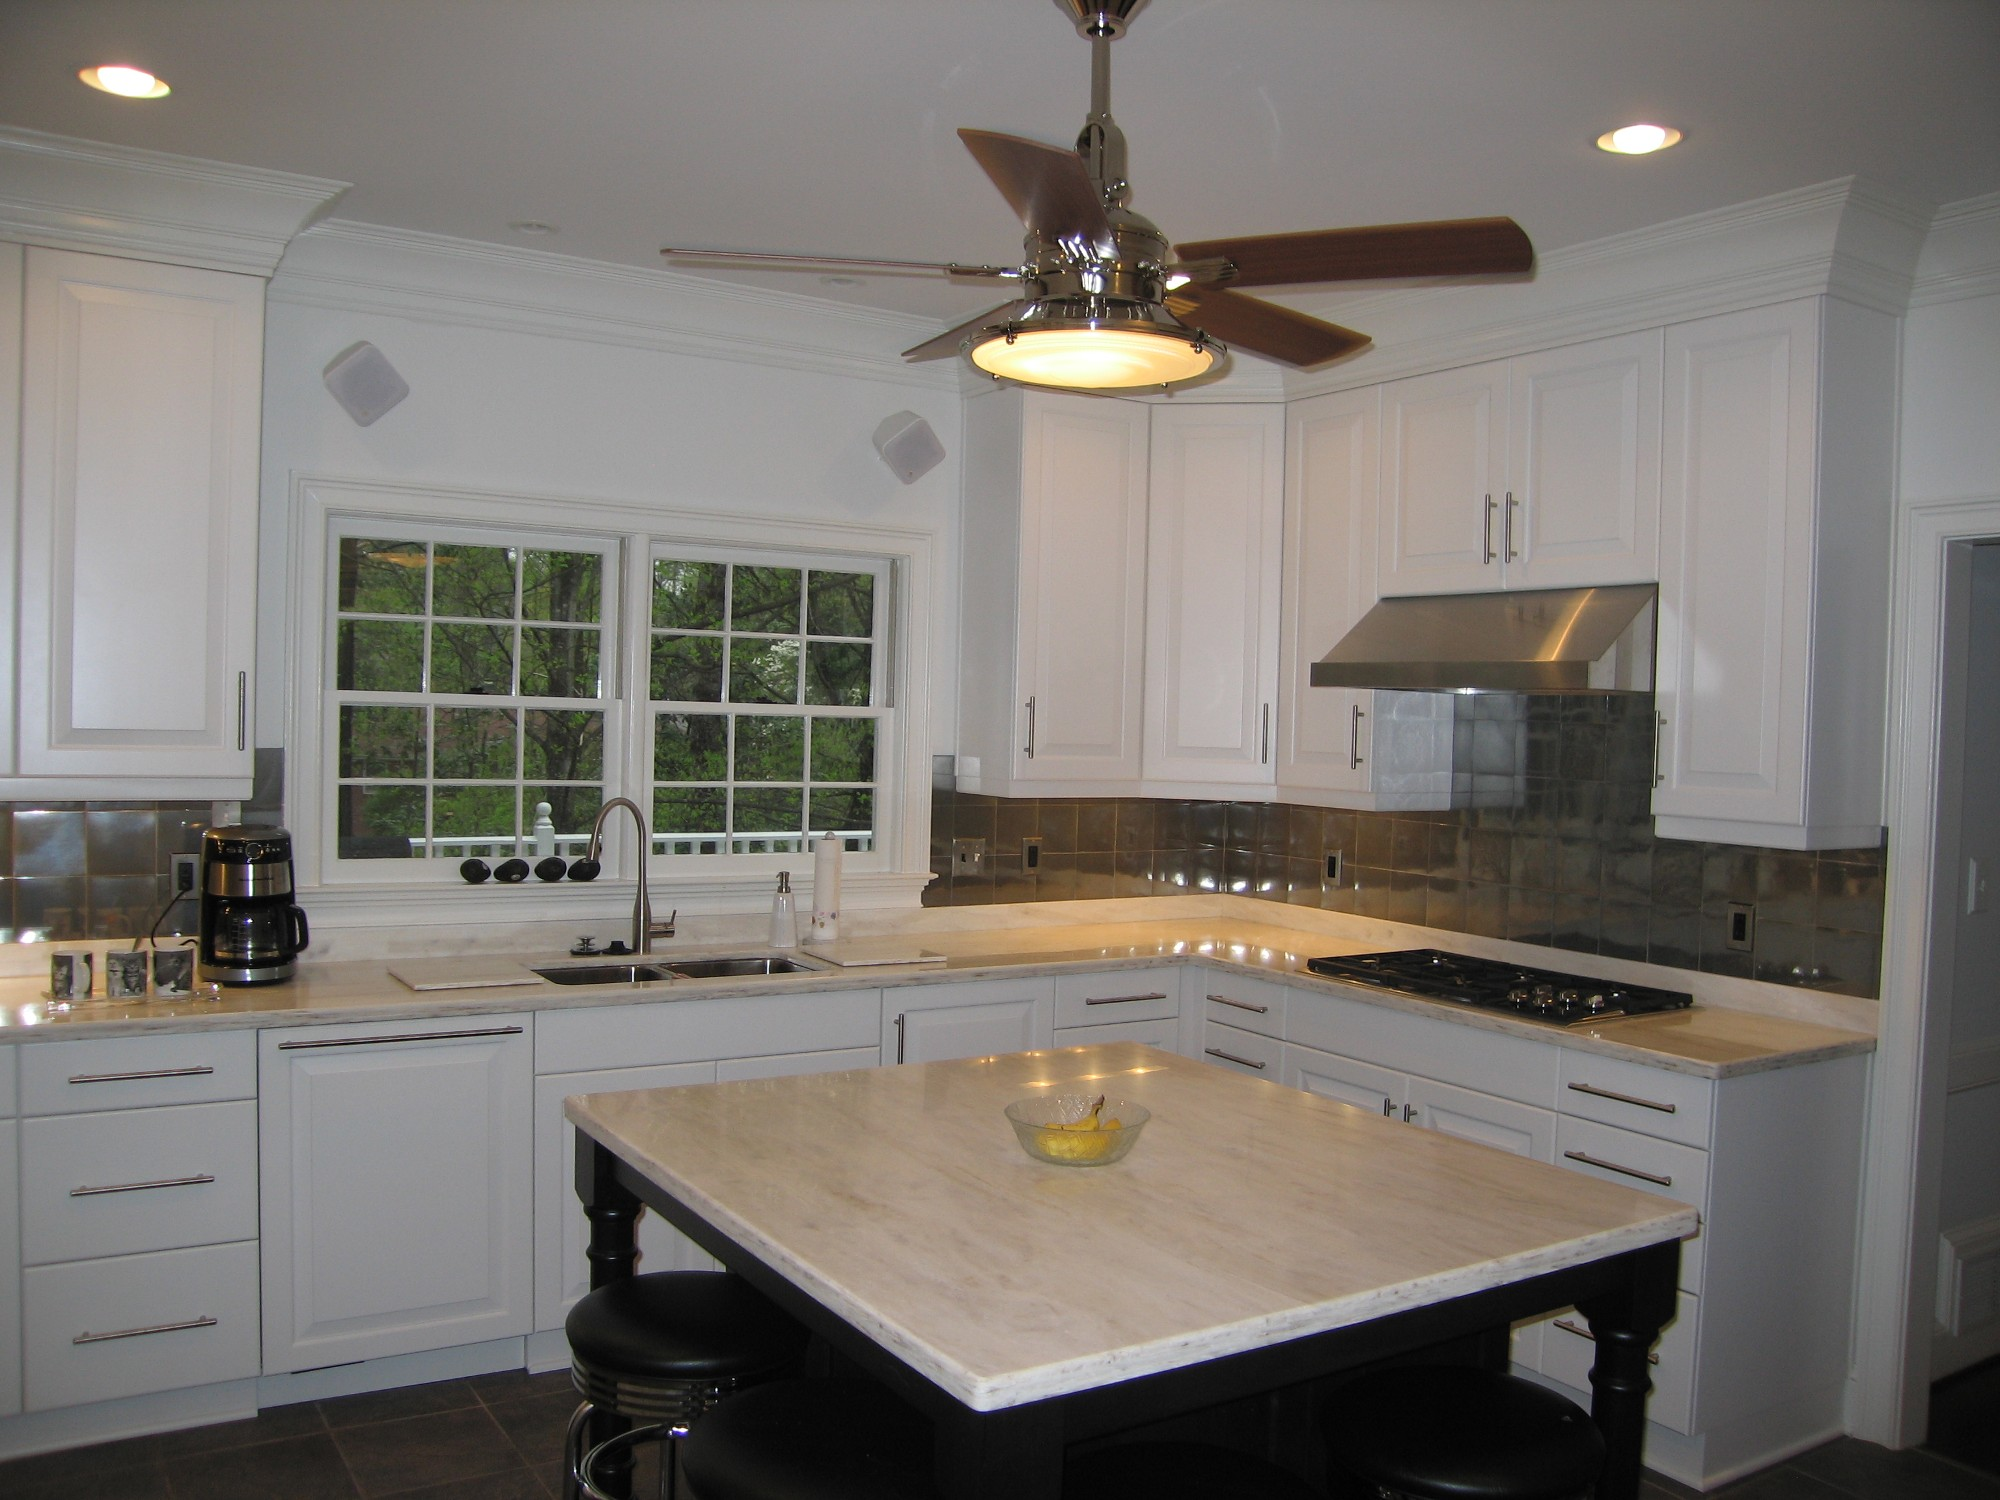 Offering the best kitchen remodels in Norcross, GA